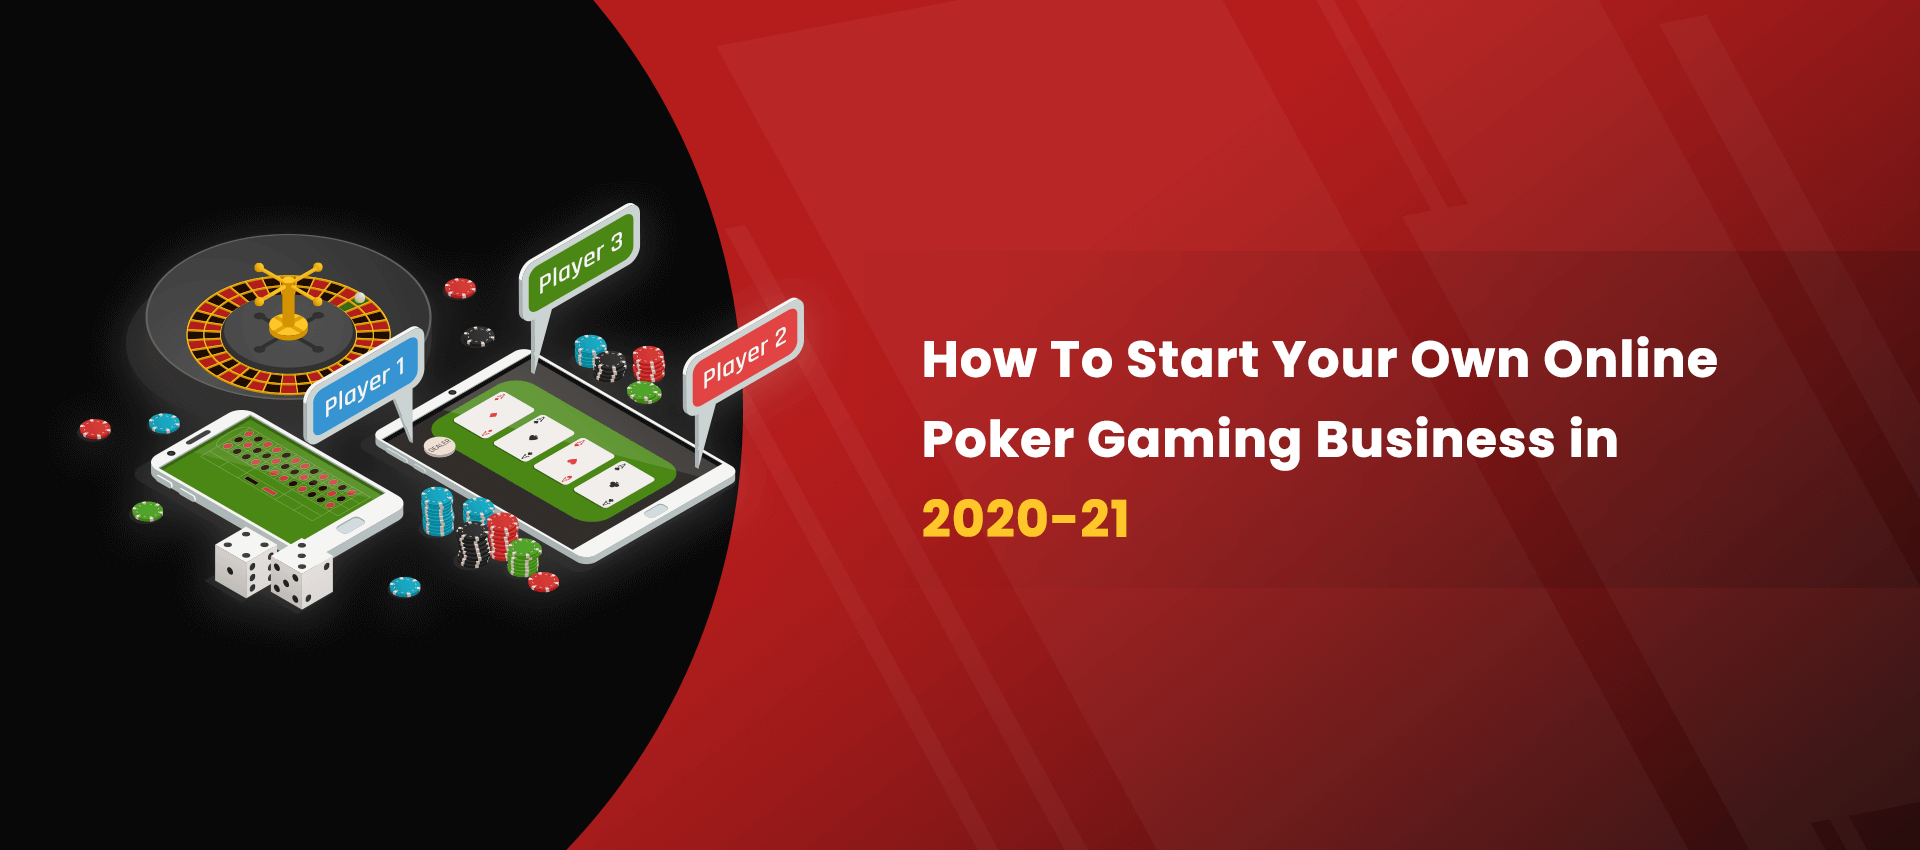 How To Start Your Own Online Poker Gaming Business in 2020-21